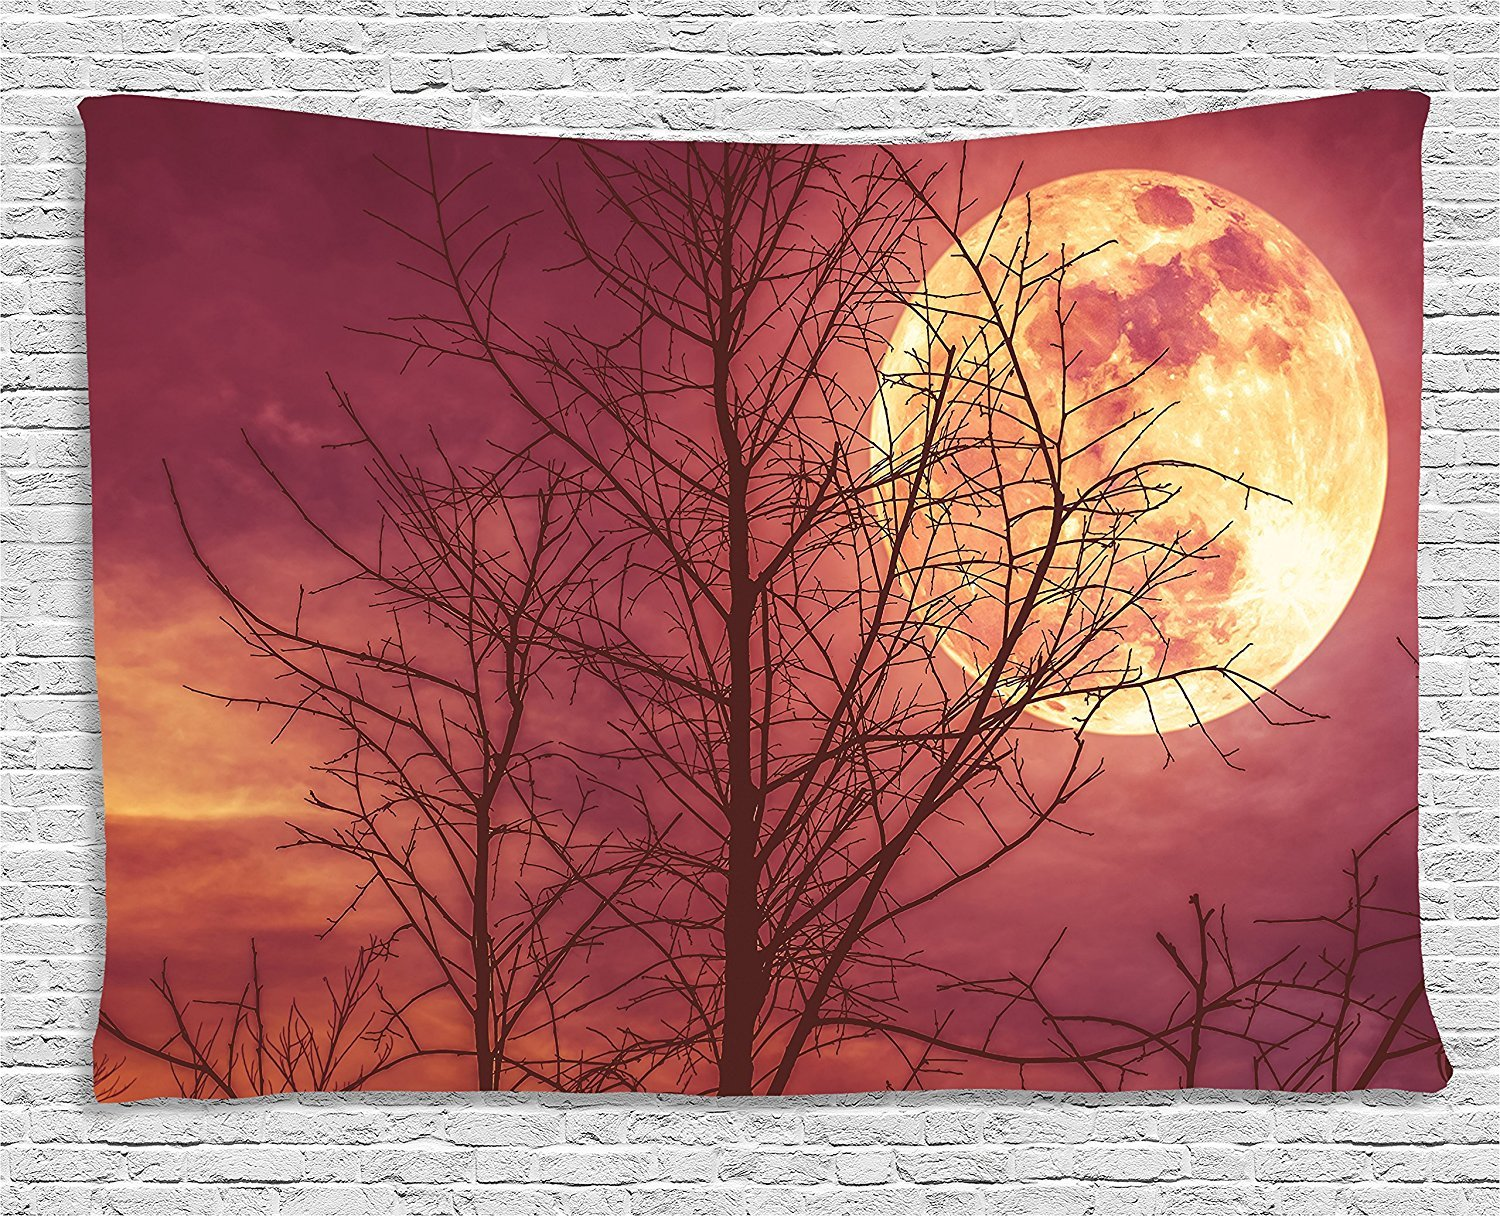 asddcdfdd Dark Red Tapestry, Night Sky Super Moon Behind Silhouette of Dead Tree Serenity Nature, Wall Hanging for Bedroom Living Room Dorm, 80 W X 60 L Inches, Dried Rose Yellow Brown